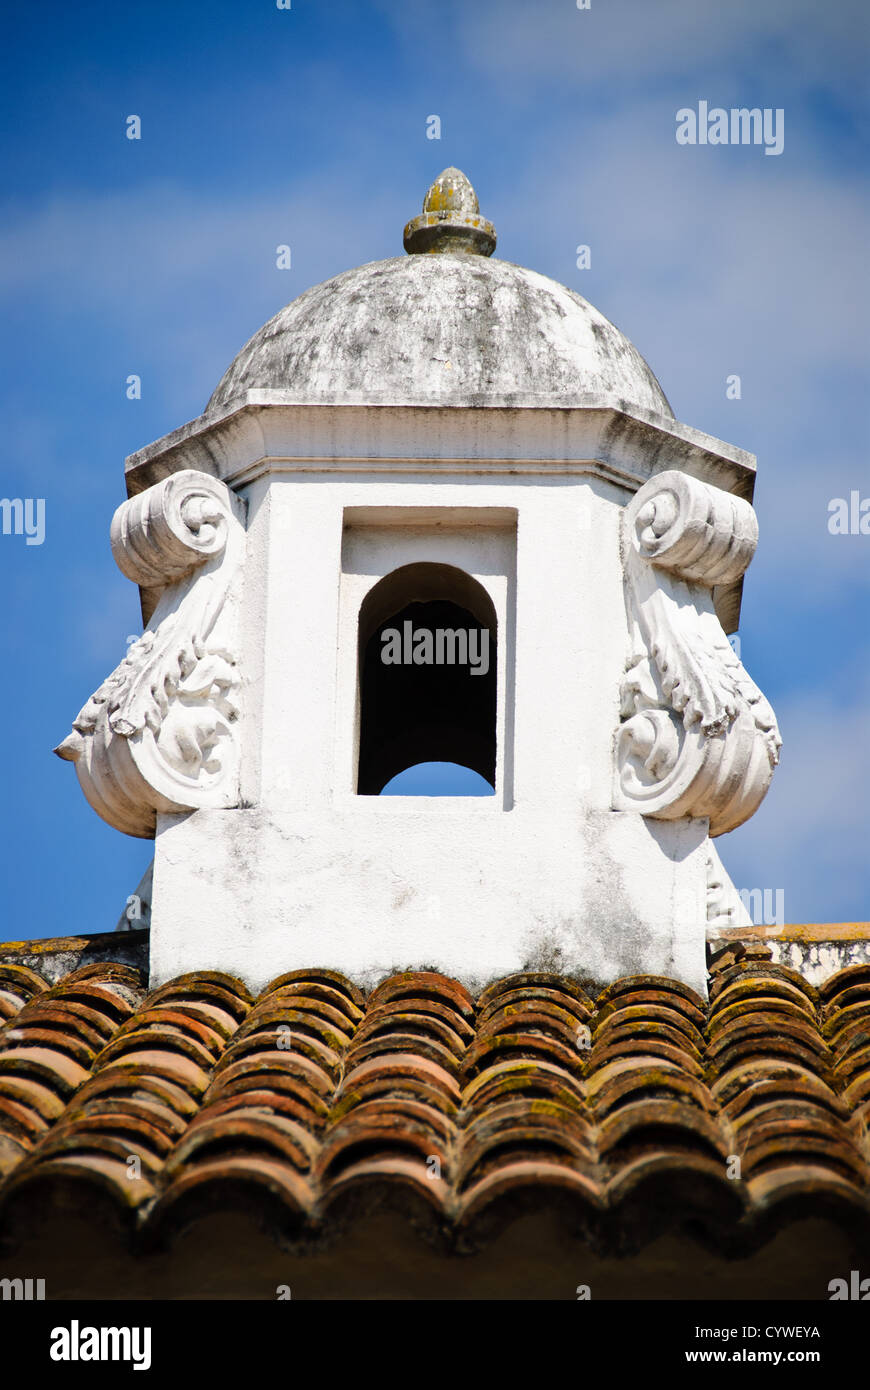 Spanish Colonial Chimney On A Rooftop In Antigua Guatemala Famous For Its Well Preserved Baroque Architecture As Number Of Ruins From